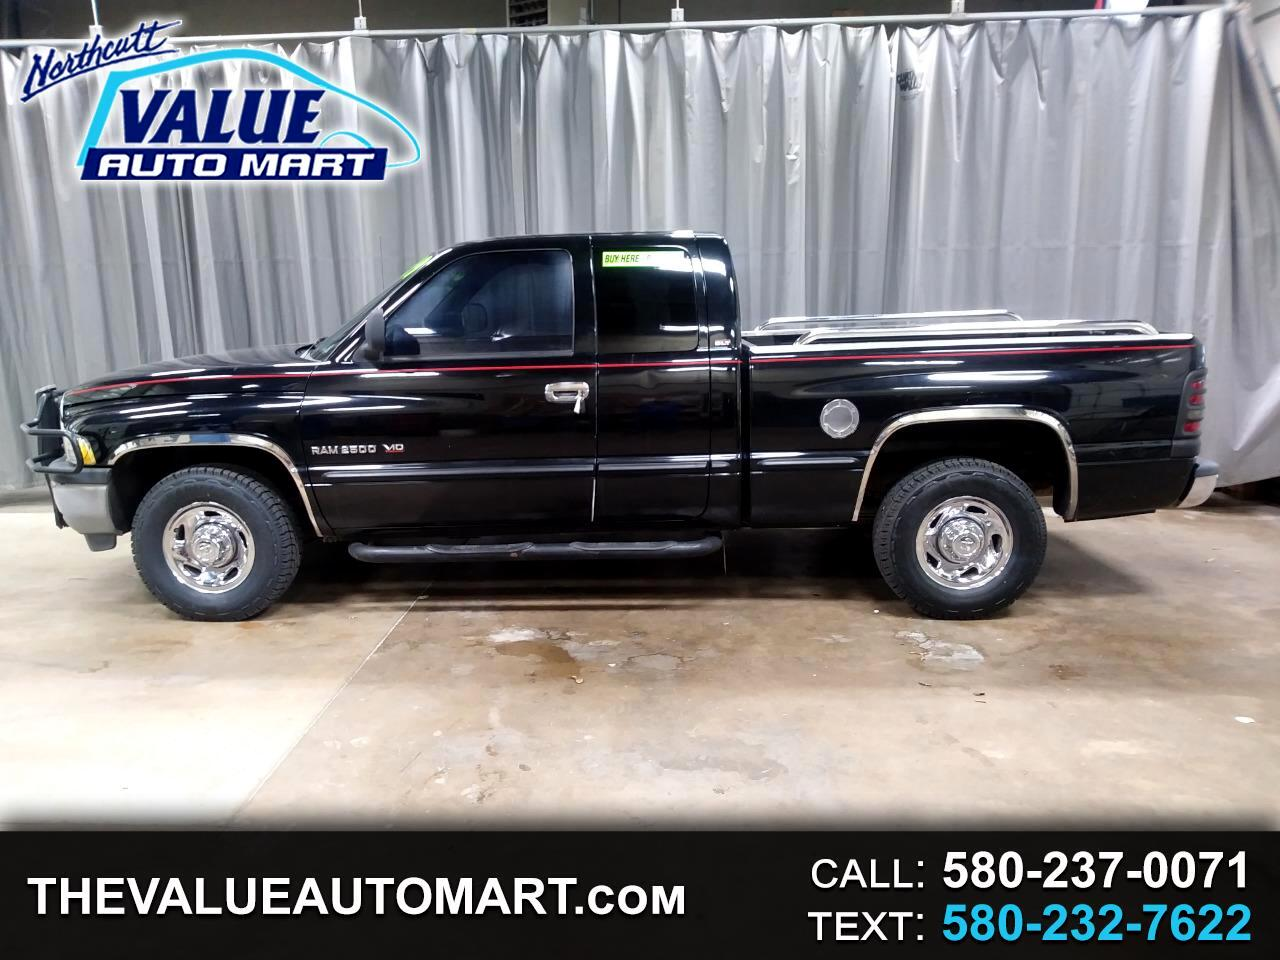 1999 Dodge Ram 2500 Quad Cab Short Bed 2WD